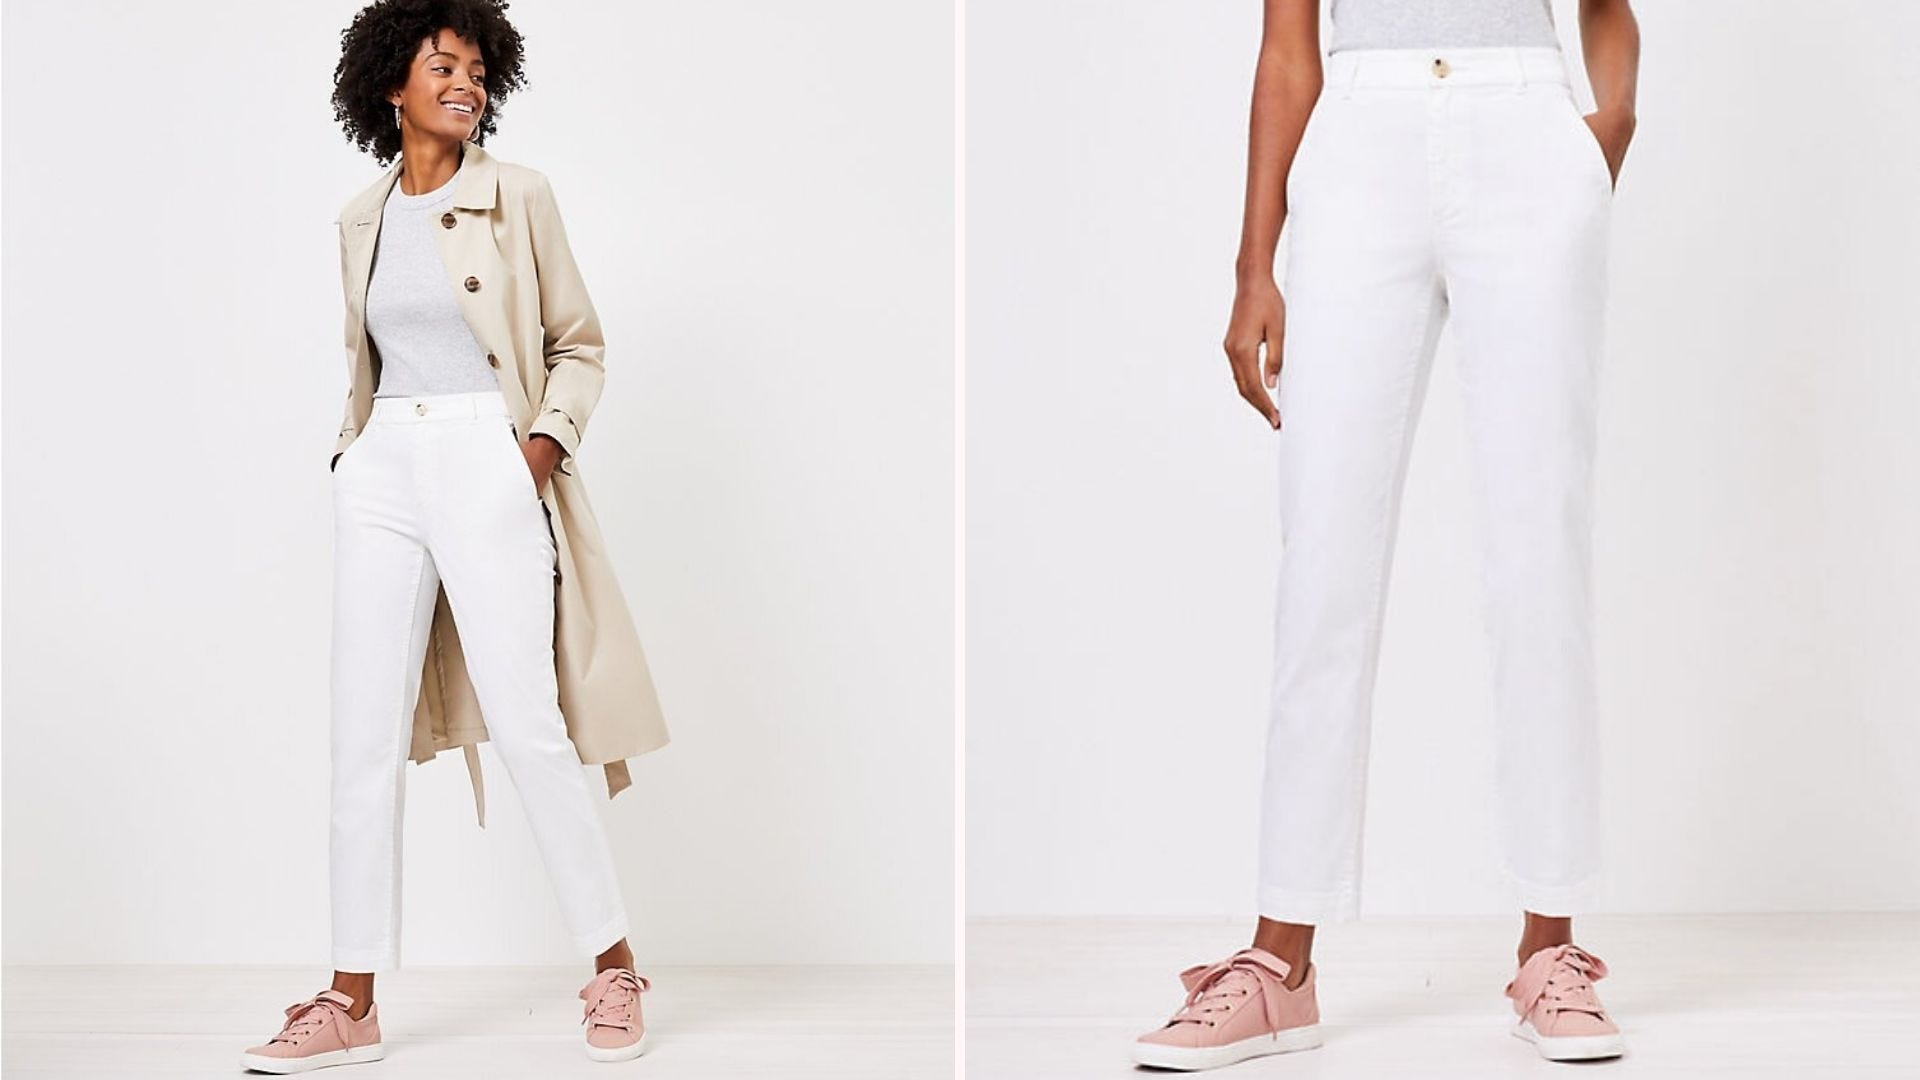 A woman wearing white pants, a gray shirt, and a beige coat; a close-up of a woman wearing white pants